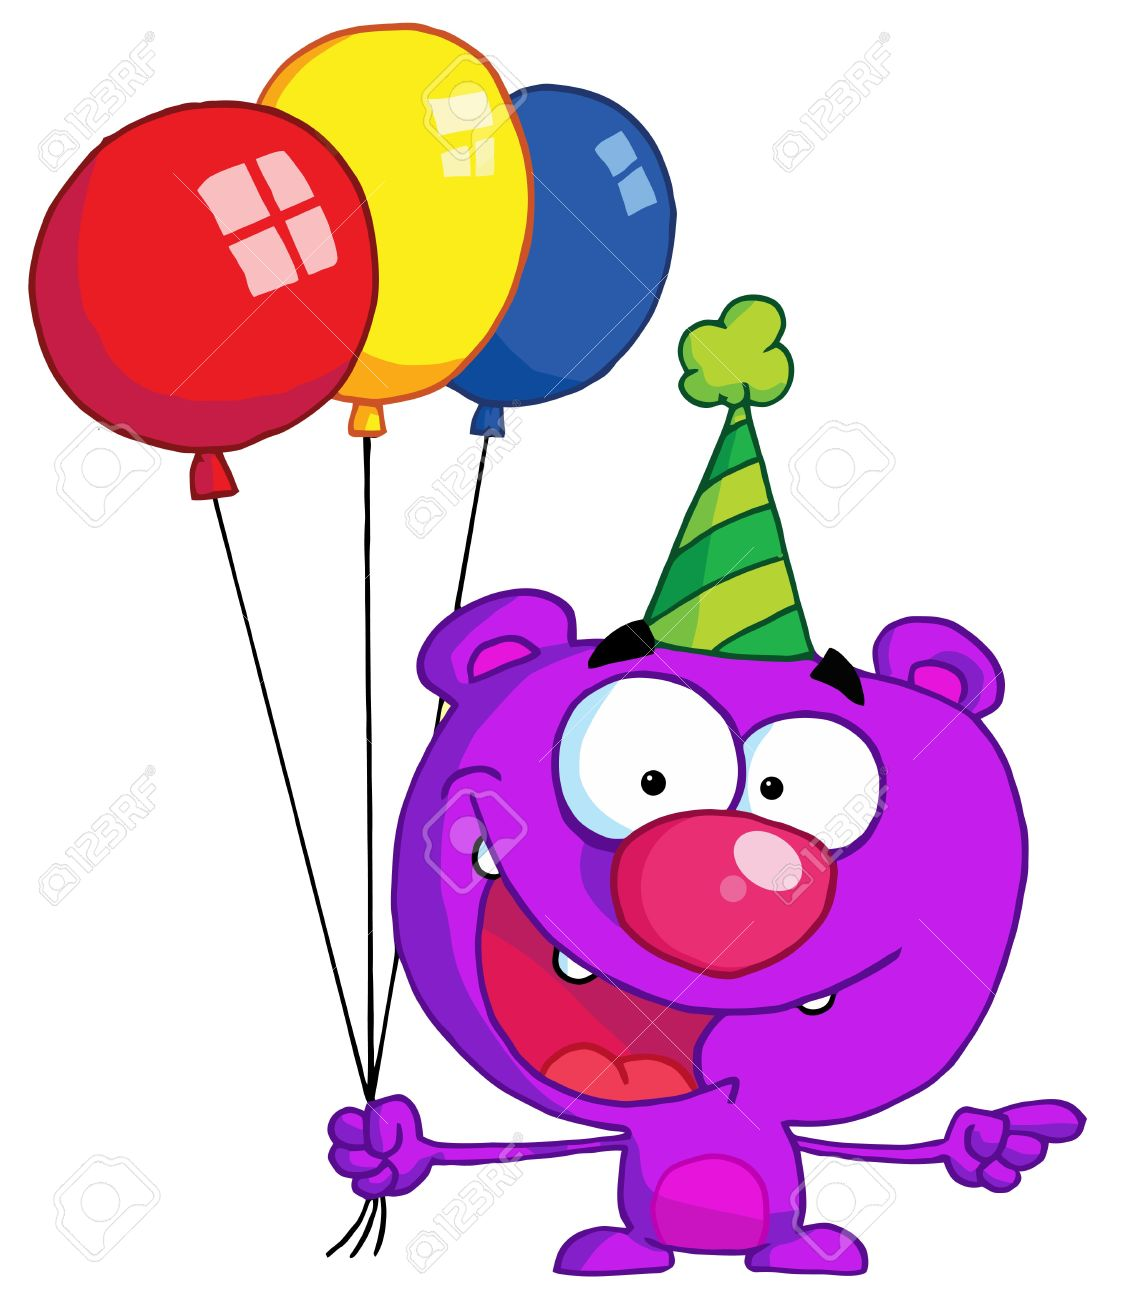 1124x1300 Bear In Party Hat With Balloons Royalty Free Cliparts, Vectors